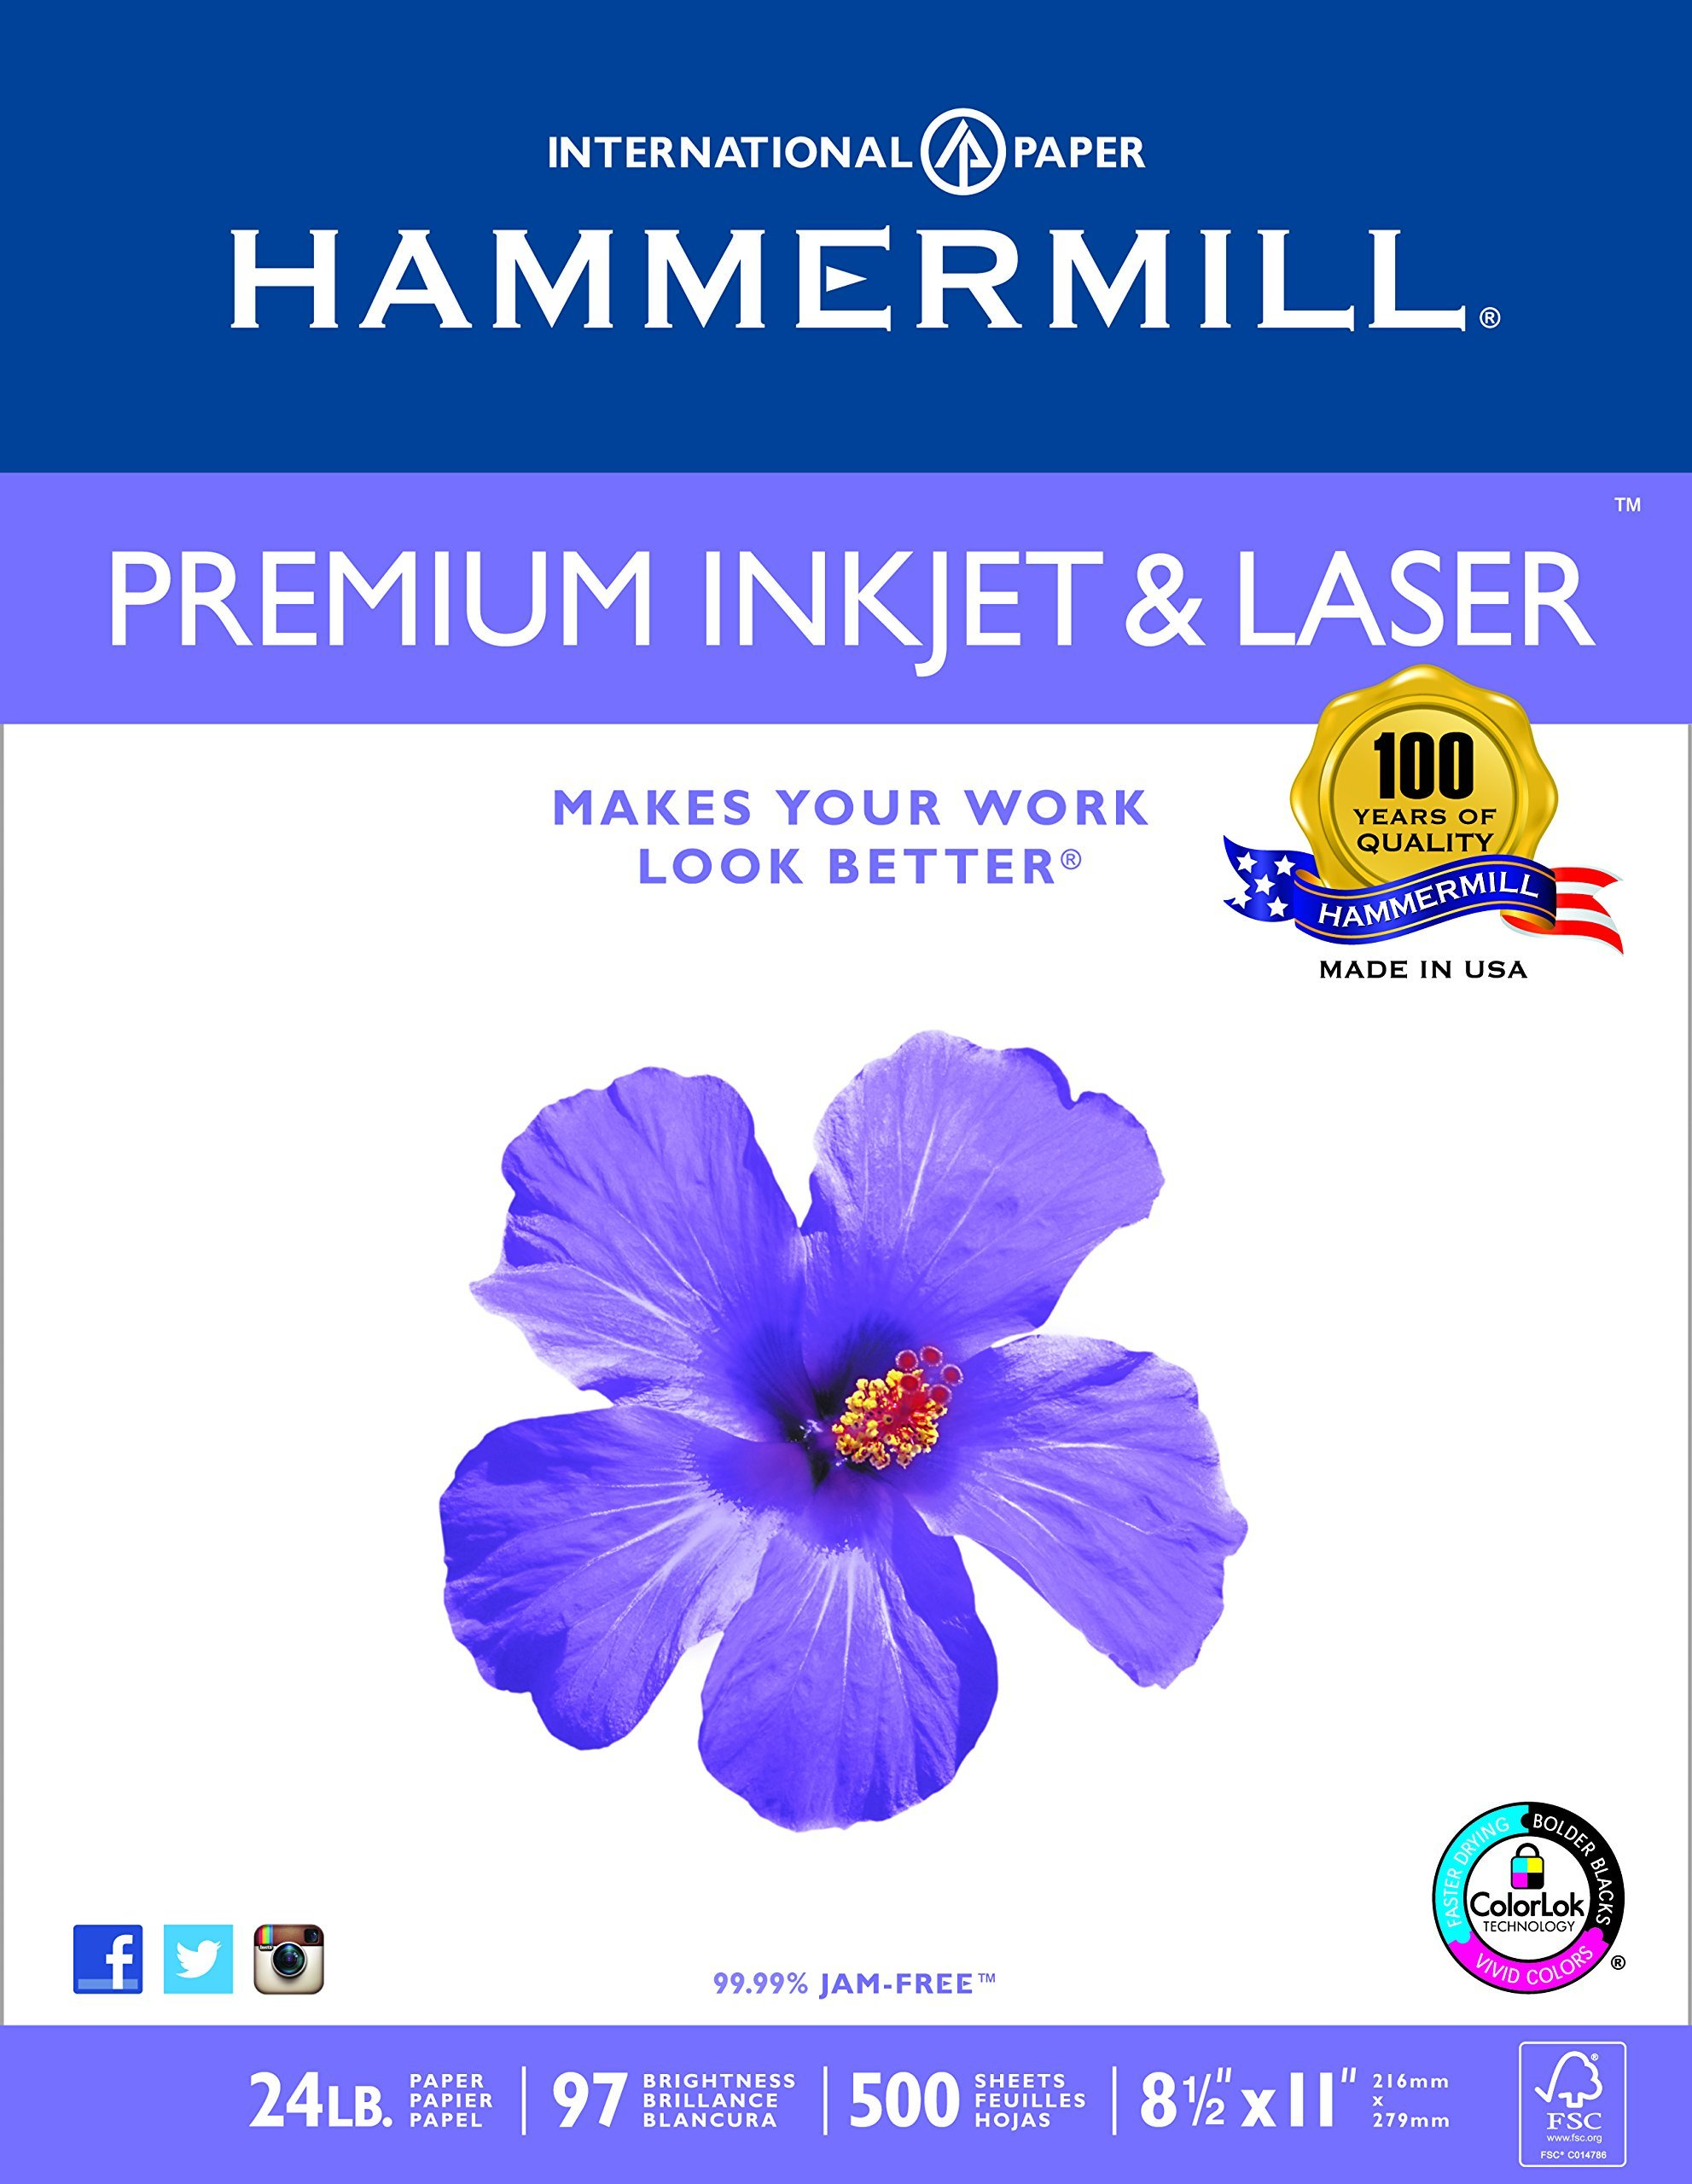 Hammermill Paper, Premium Inkjet & Laser Multipurpose Paper, 8.5 x 11 Paper, Letter Size, 24lb Paper, 97 Bright, 1 Ream / 500 Sheets (166140R) Acid Free Paper